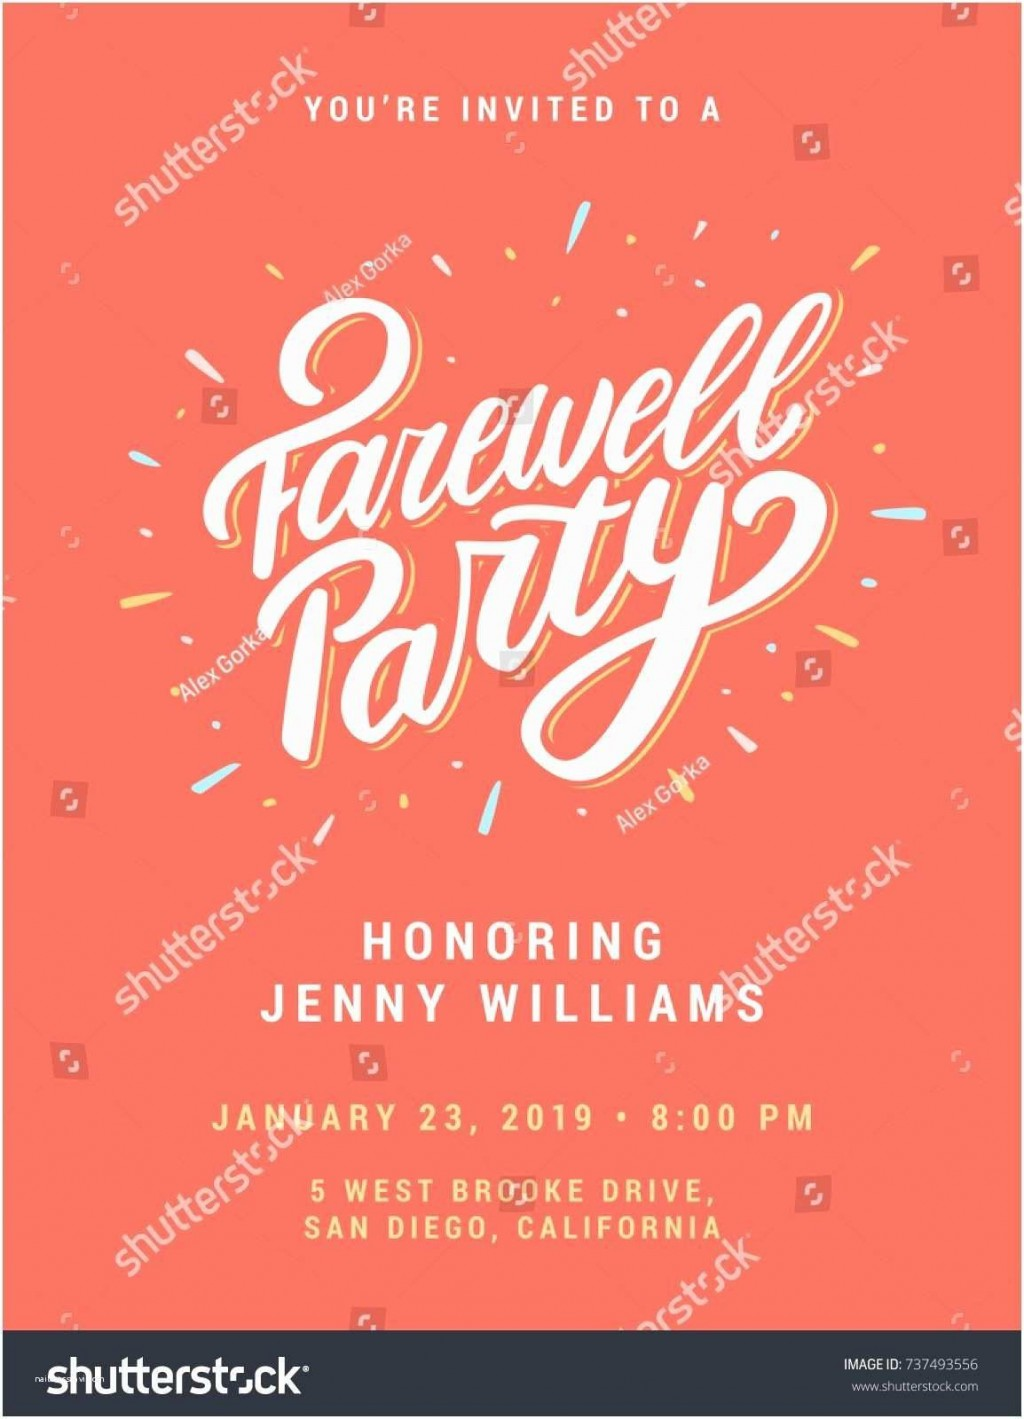 007 Dreaded Going Away Party Invitation Template High Resolution  Free PrintableLarge